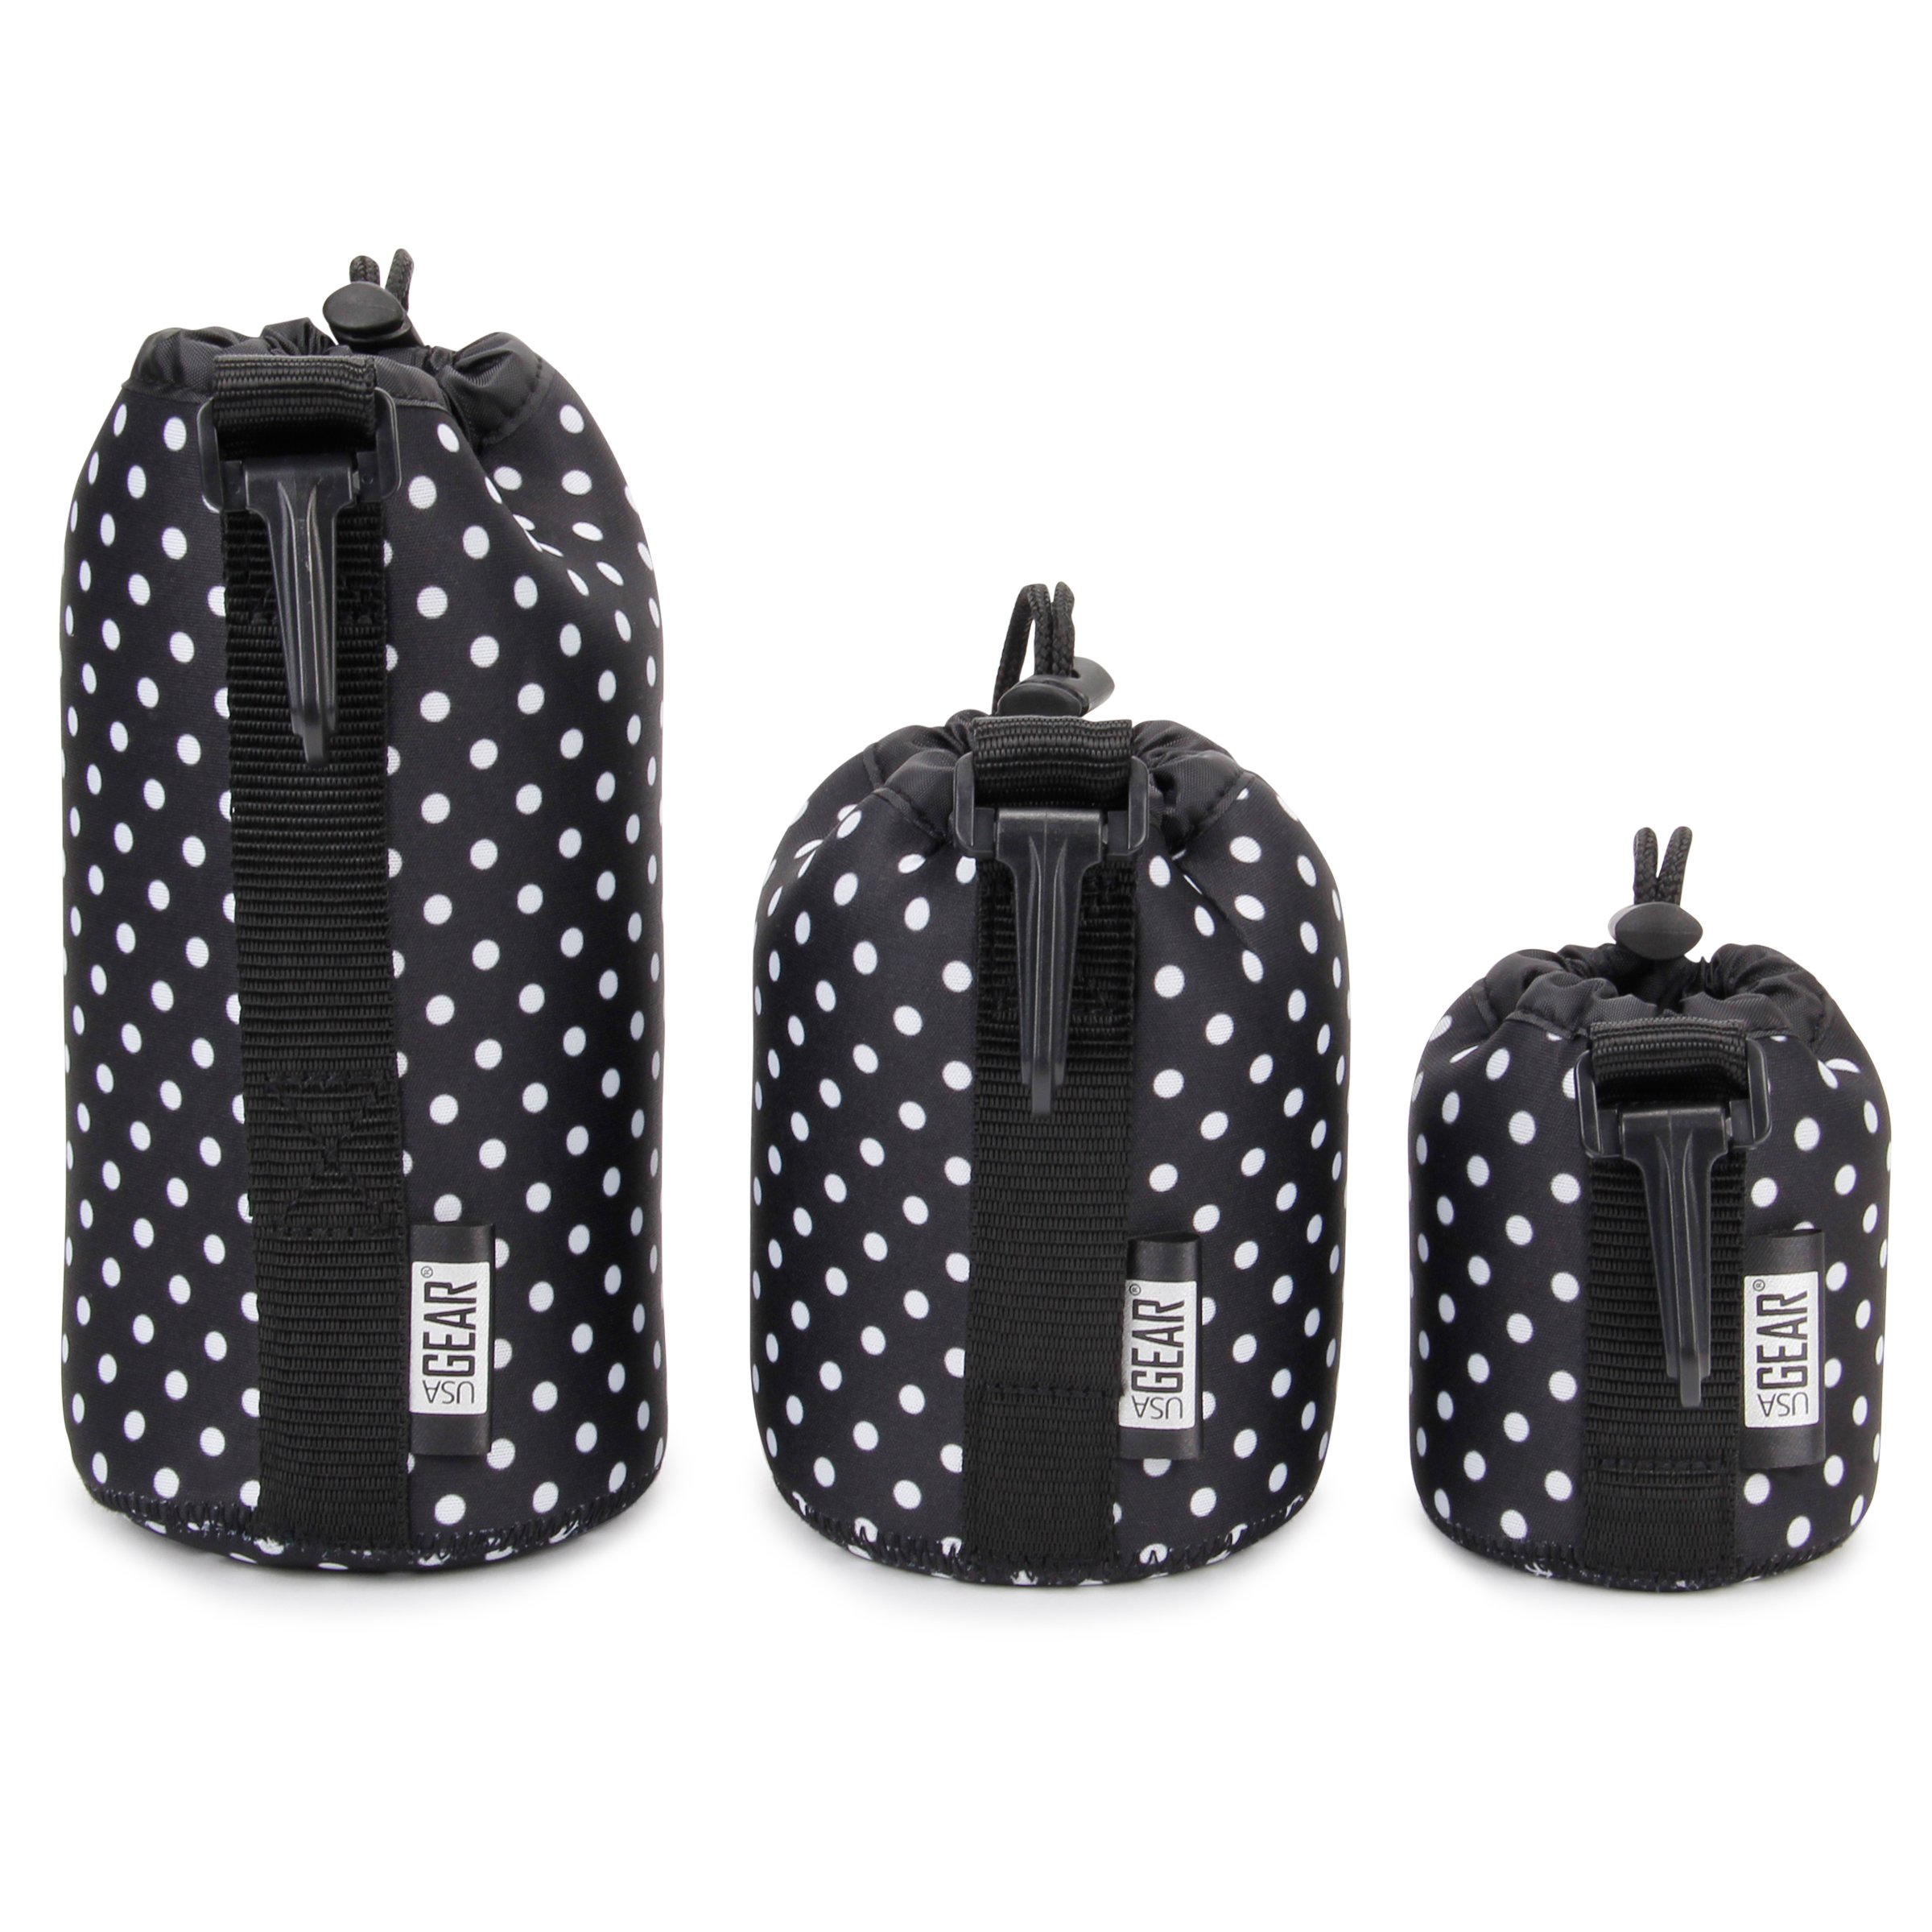 FlexARMOR Protective Neoprene Lens Case Pouch Set 3-Pack (Polka Dot) by USA Gear - Small, Medium and Large Cases Hold Lenses up to 70-300mm with Drawstring Opening, Attached Clip, Reinforced Belt Loop by USA Gear